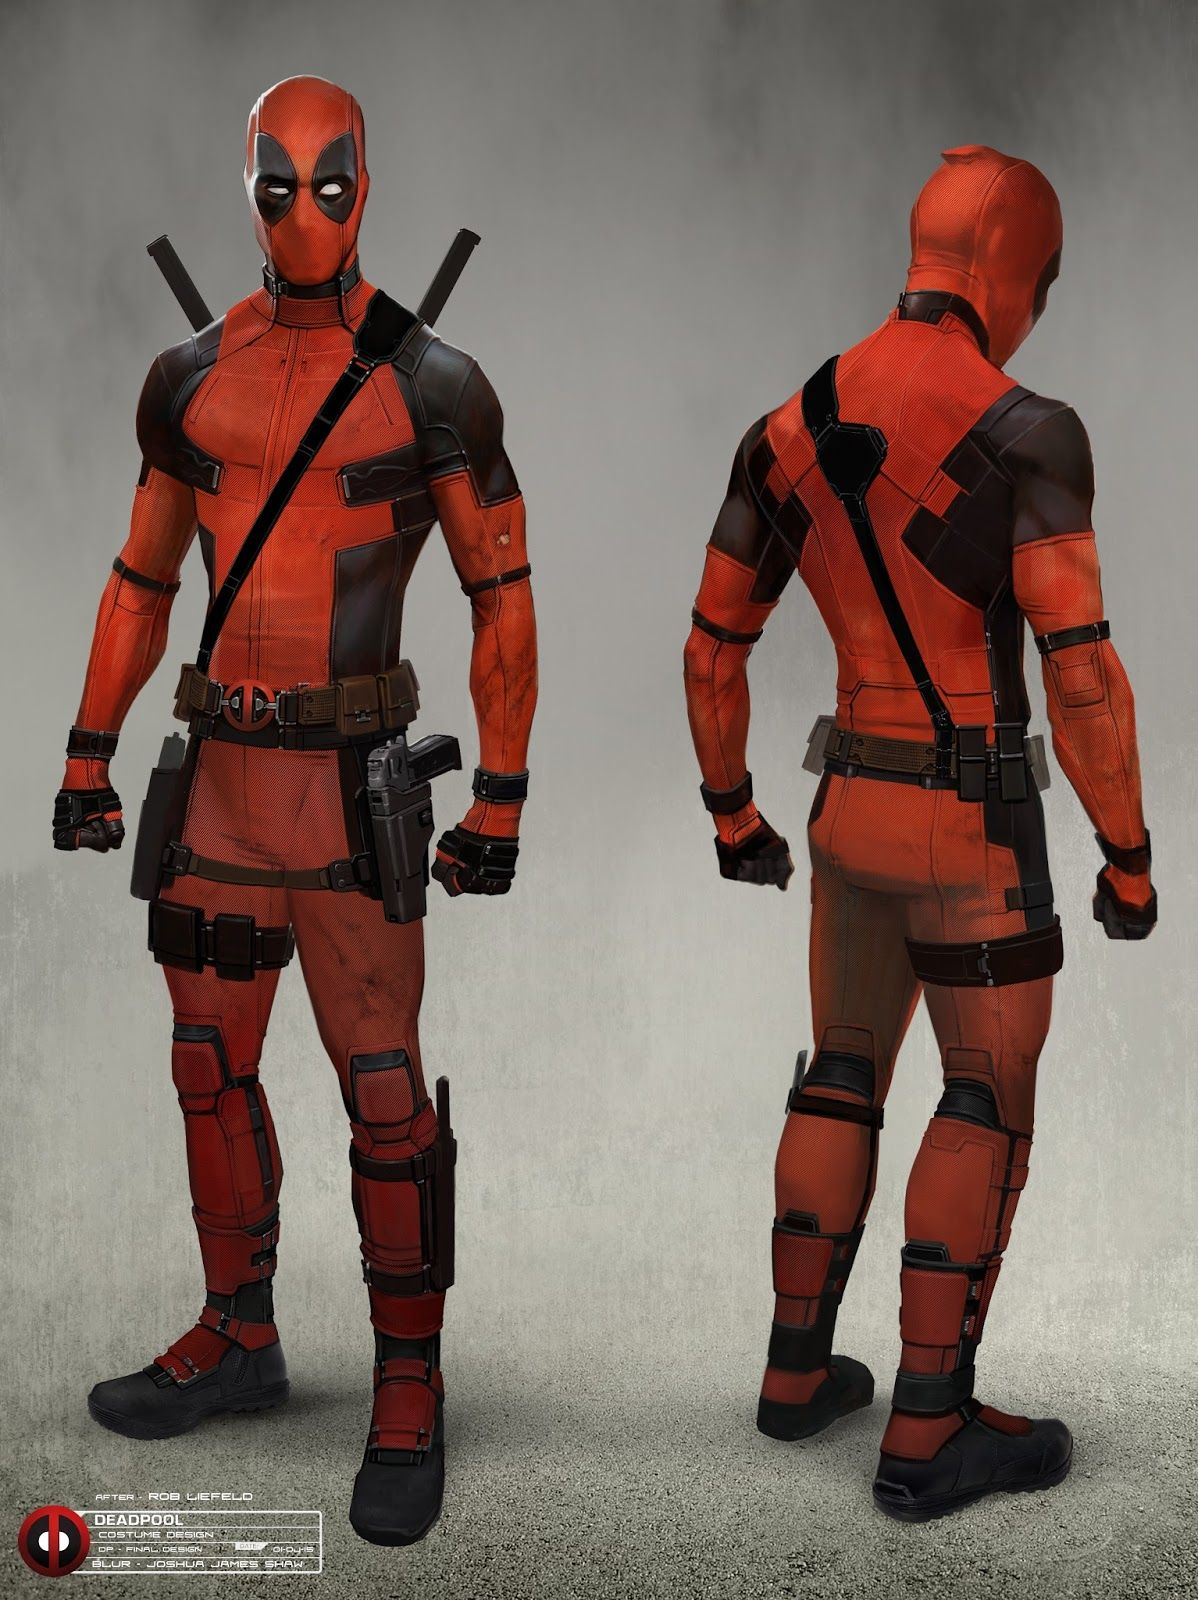 Imgur The Most Awesome Images On The Internet Deadpool Movie Deadpool Costume Joshua James